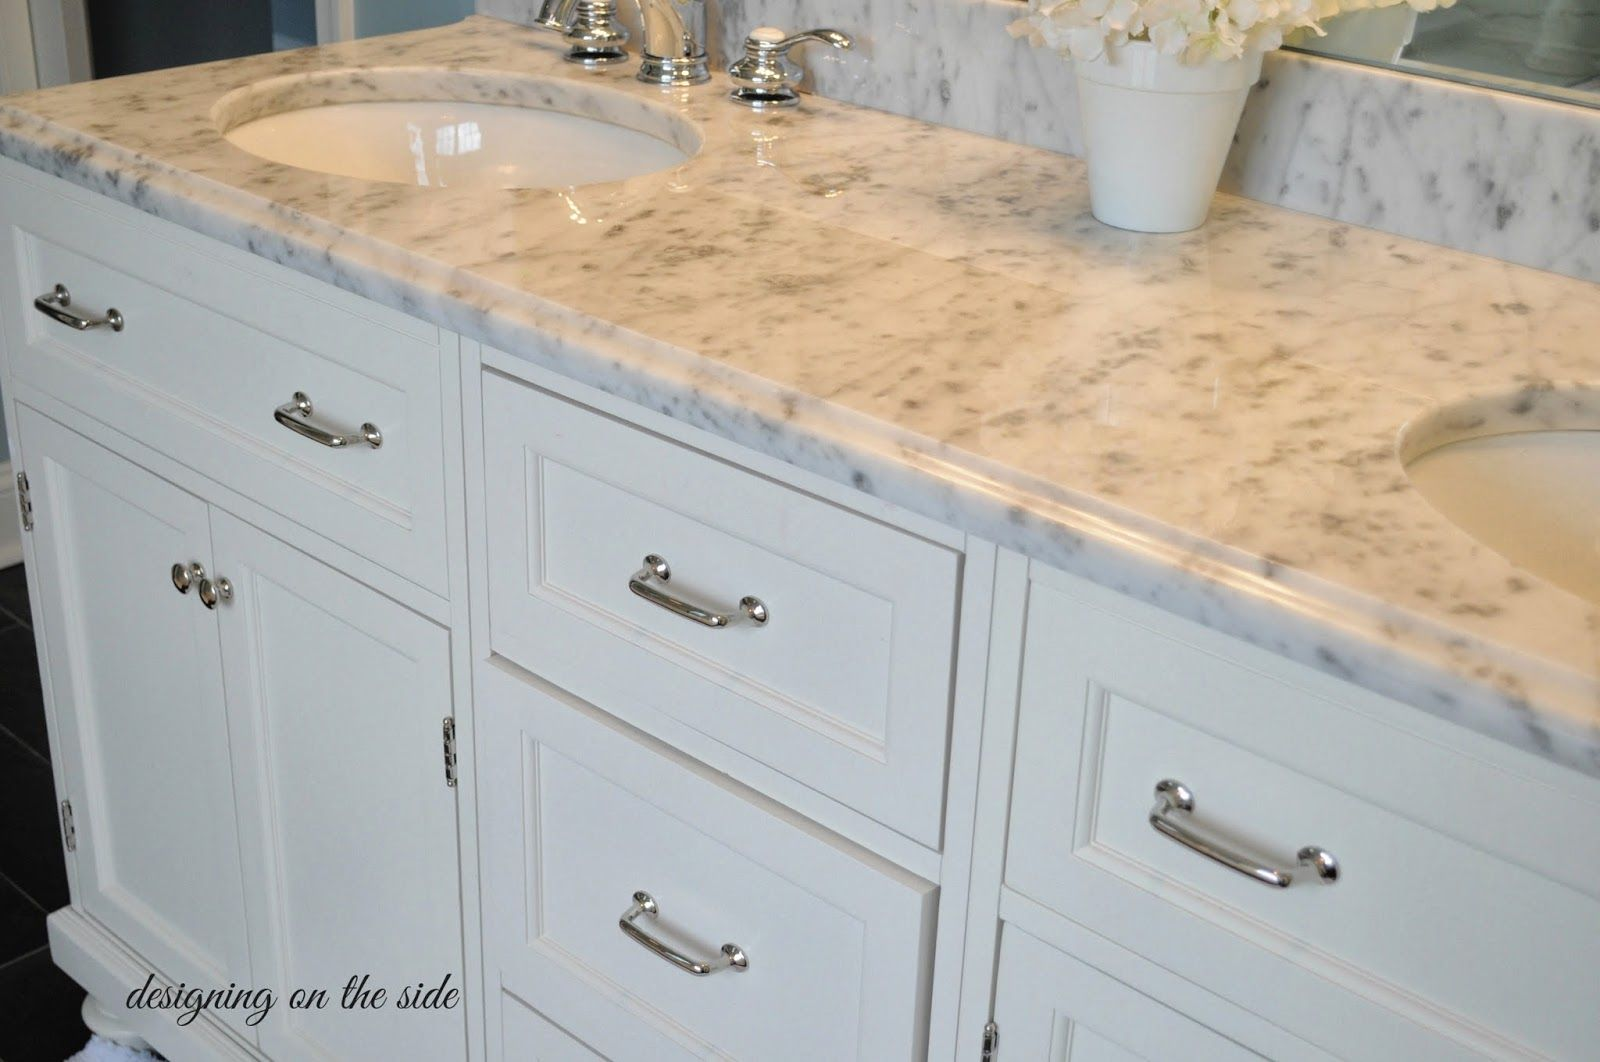 2perfection Decor Basement Coastal Bathroom Reveal: A Blog About Chic Affordable Home Decor, Design And DIY